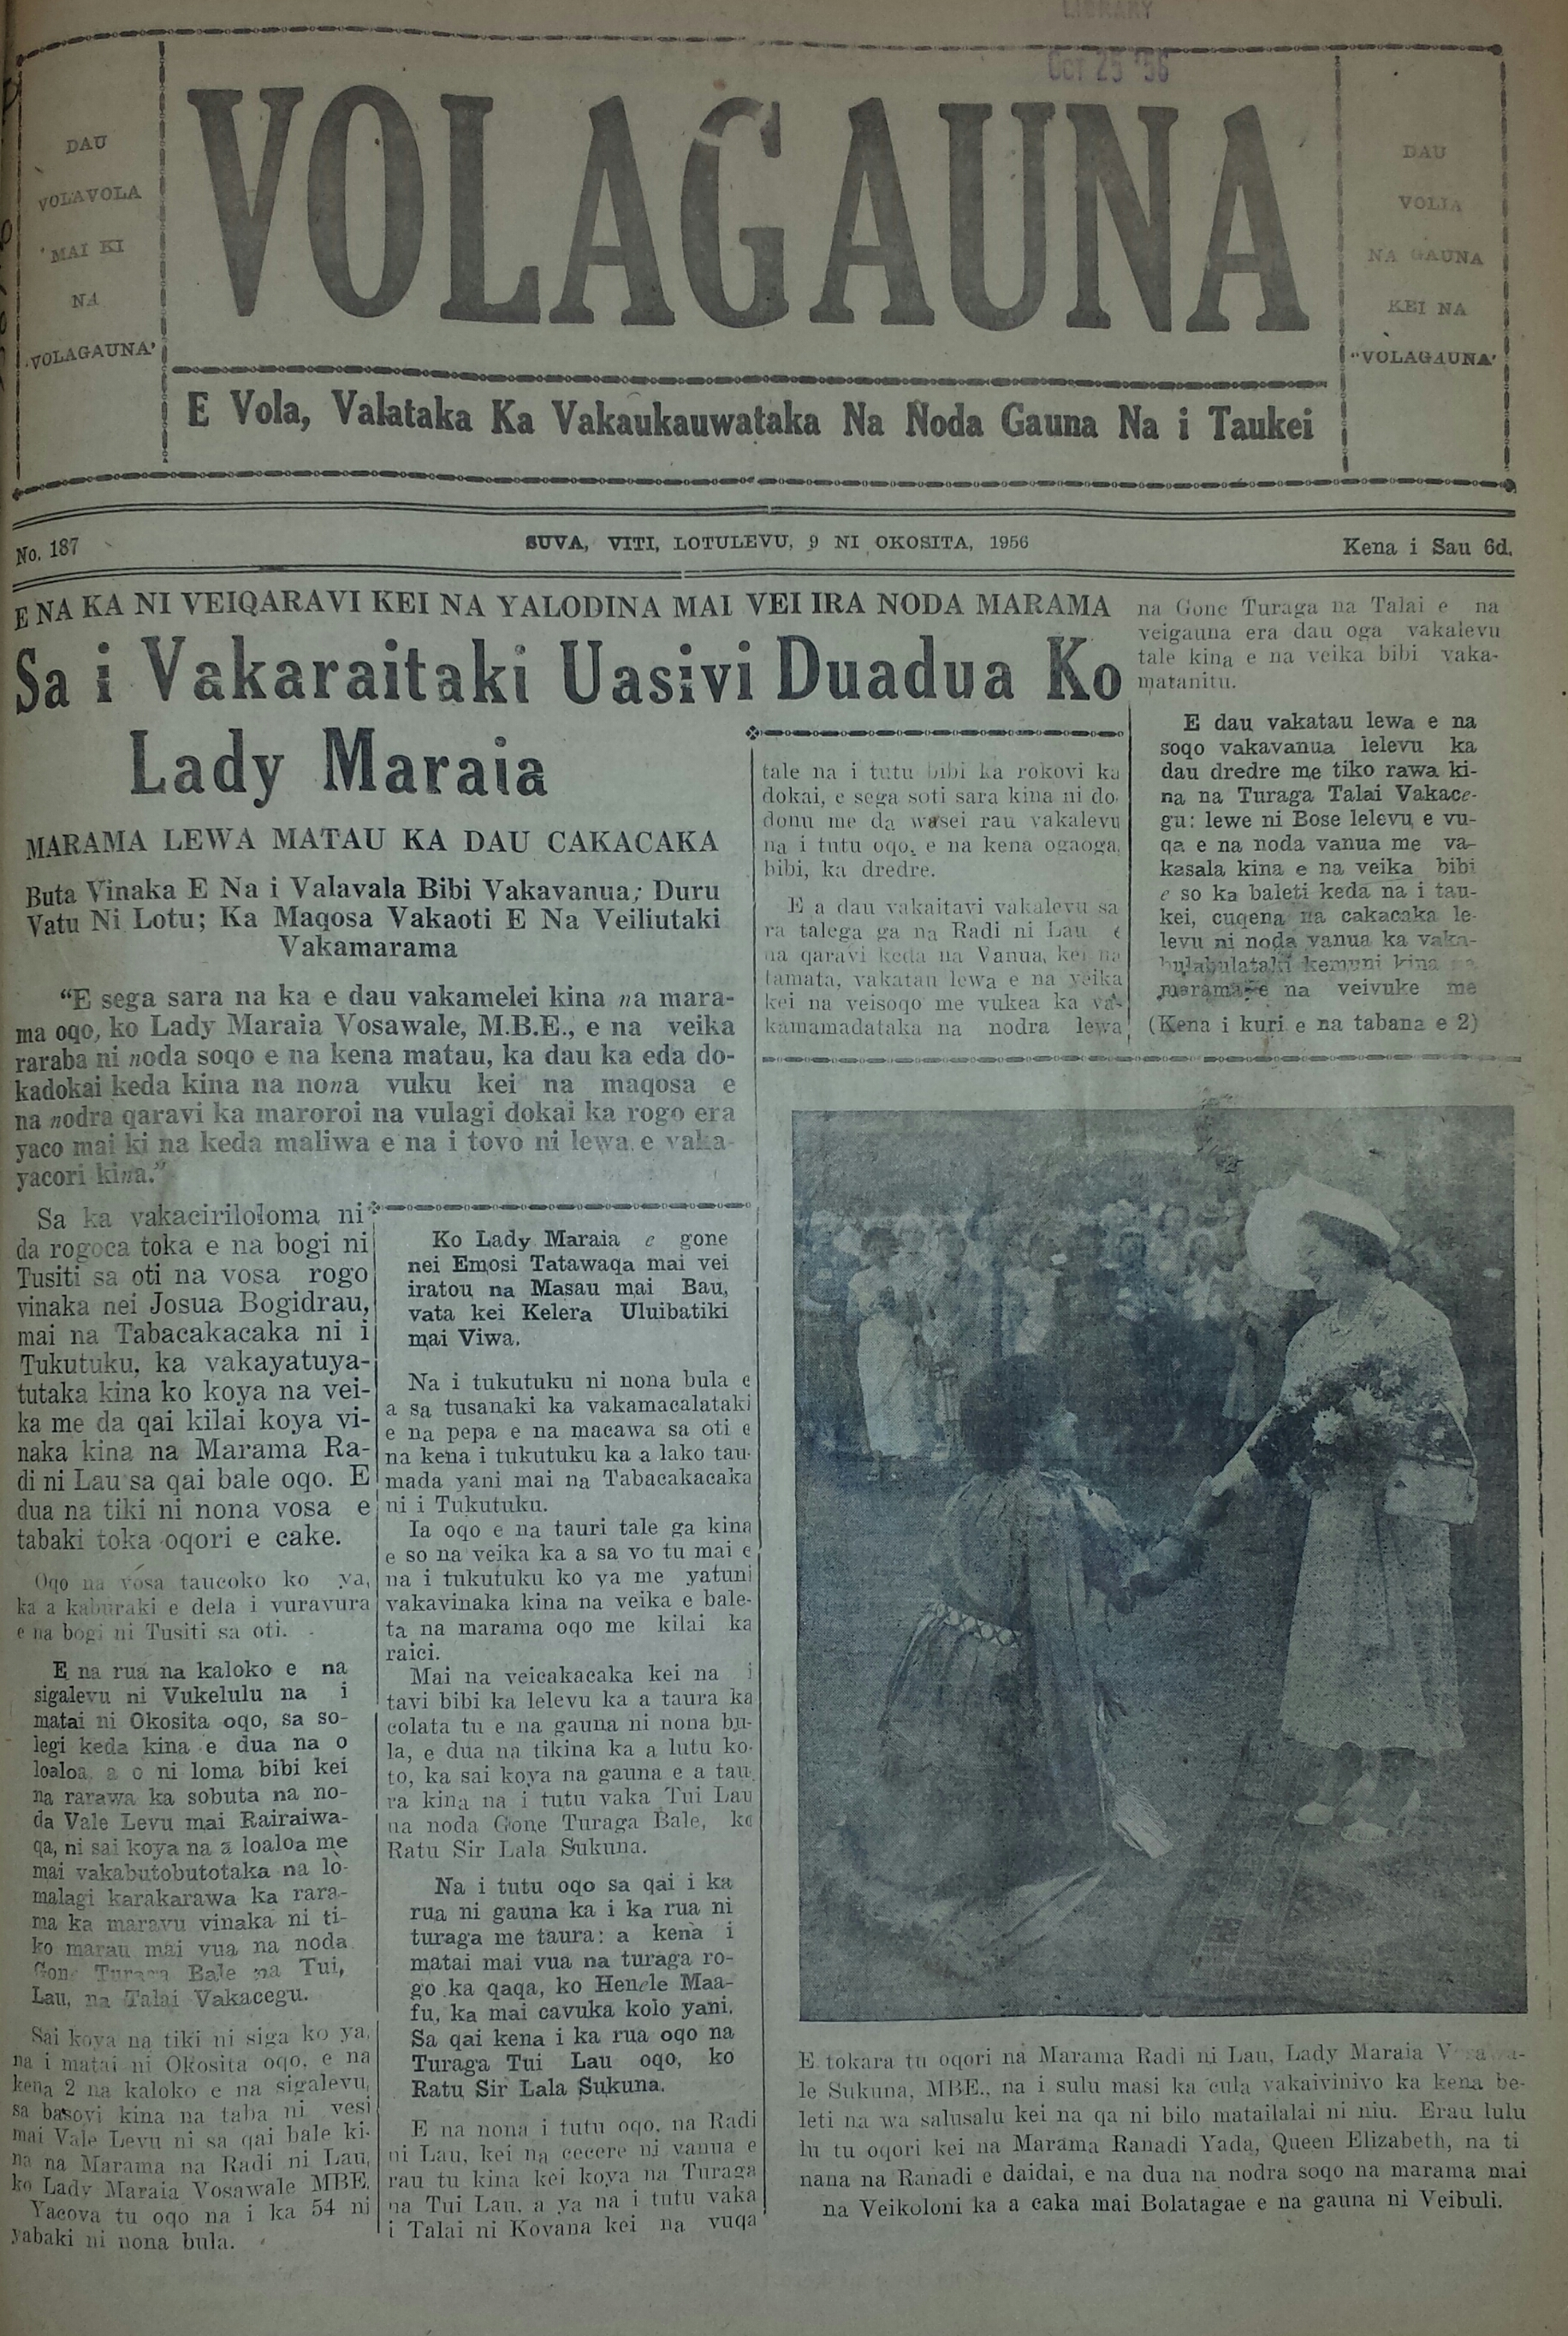 Cover of the 'Volagauna'